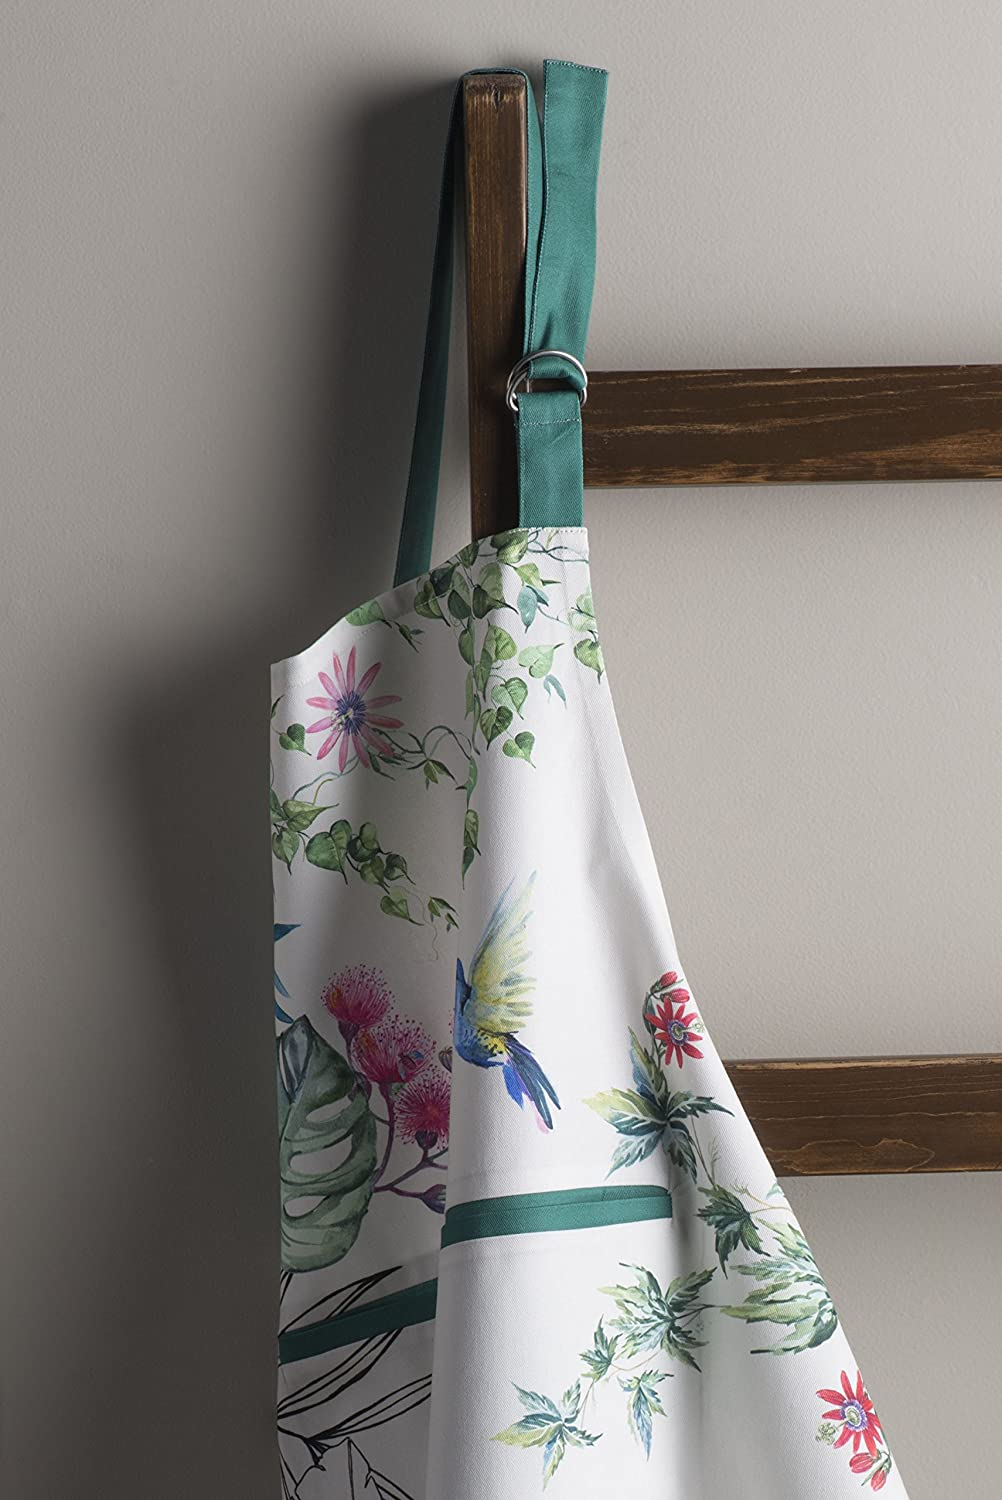 Maison d Hermine Tropiques 100/% Cotton Apron with an Adjustable Neck and Hidden Center Pocket 27.5 Inch by 31.5 Inch Aspero